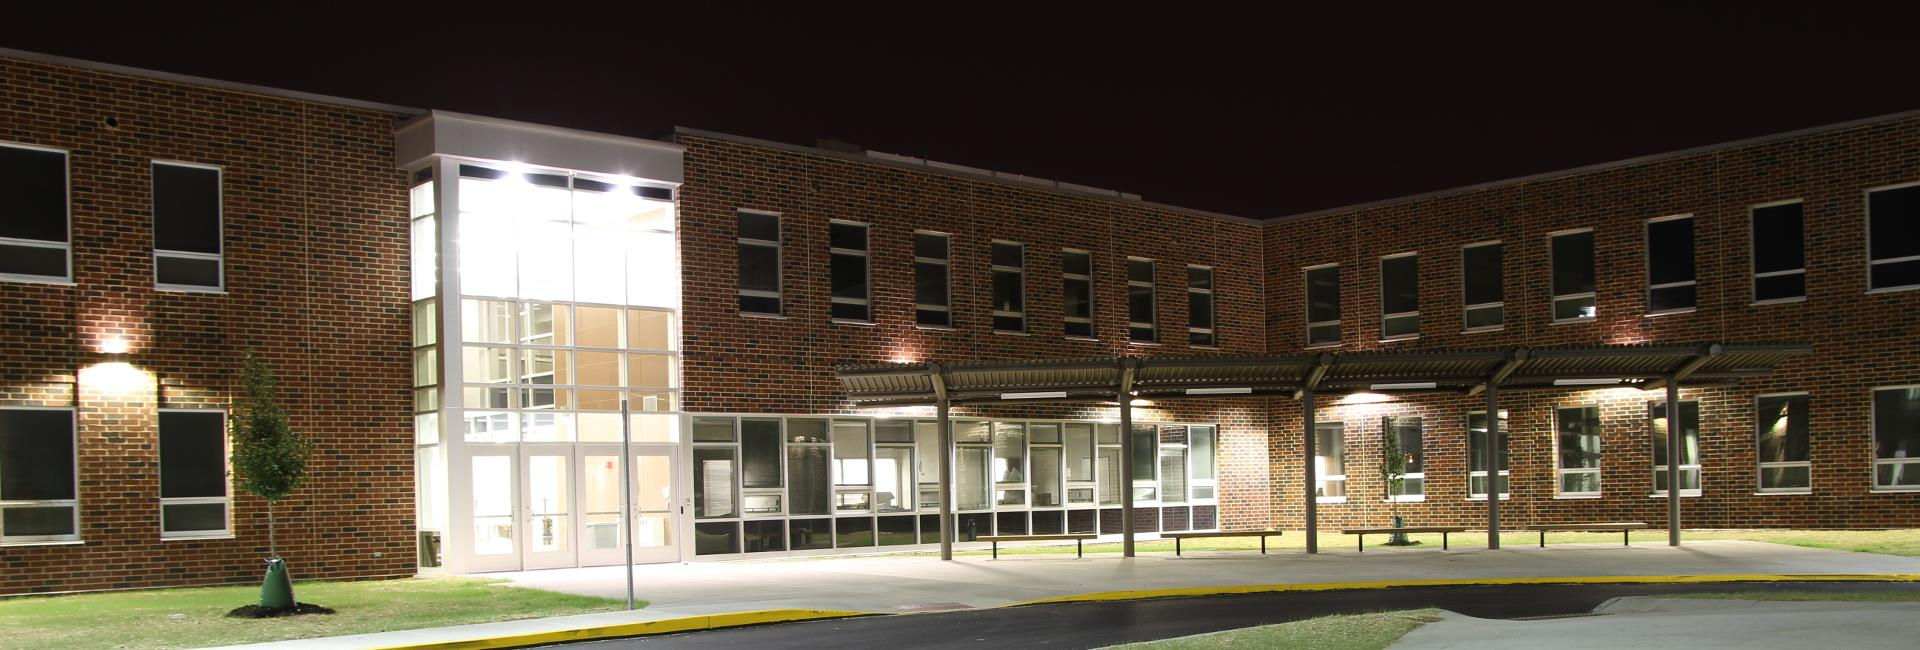 Brooklyn Intermediate school-Front door at night